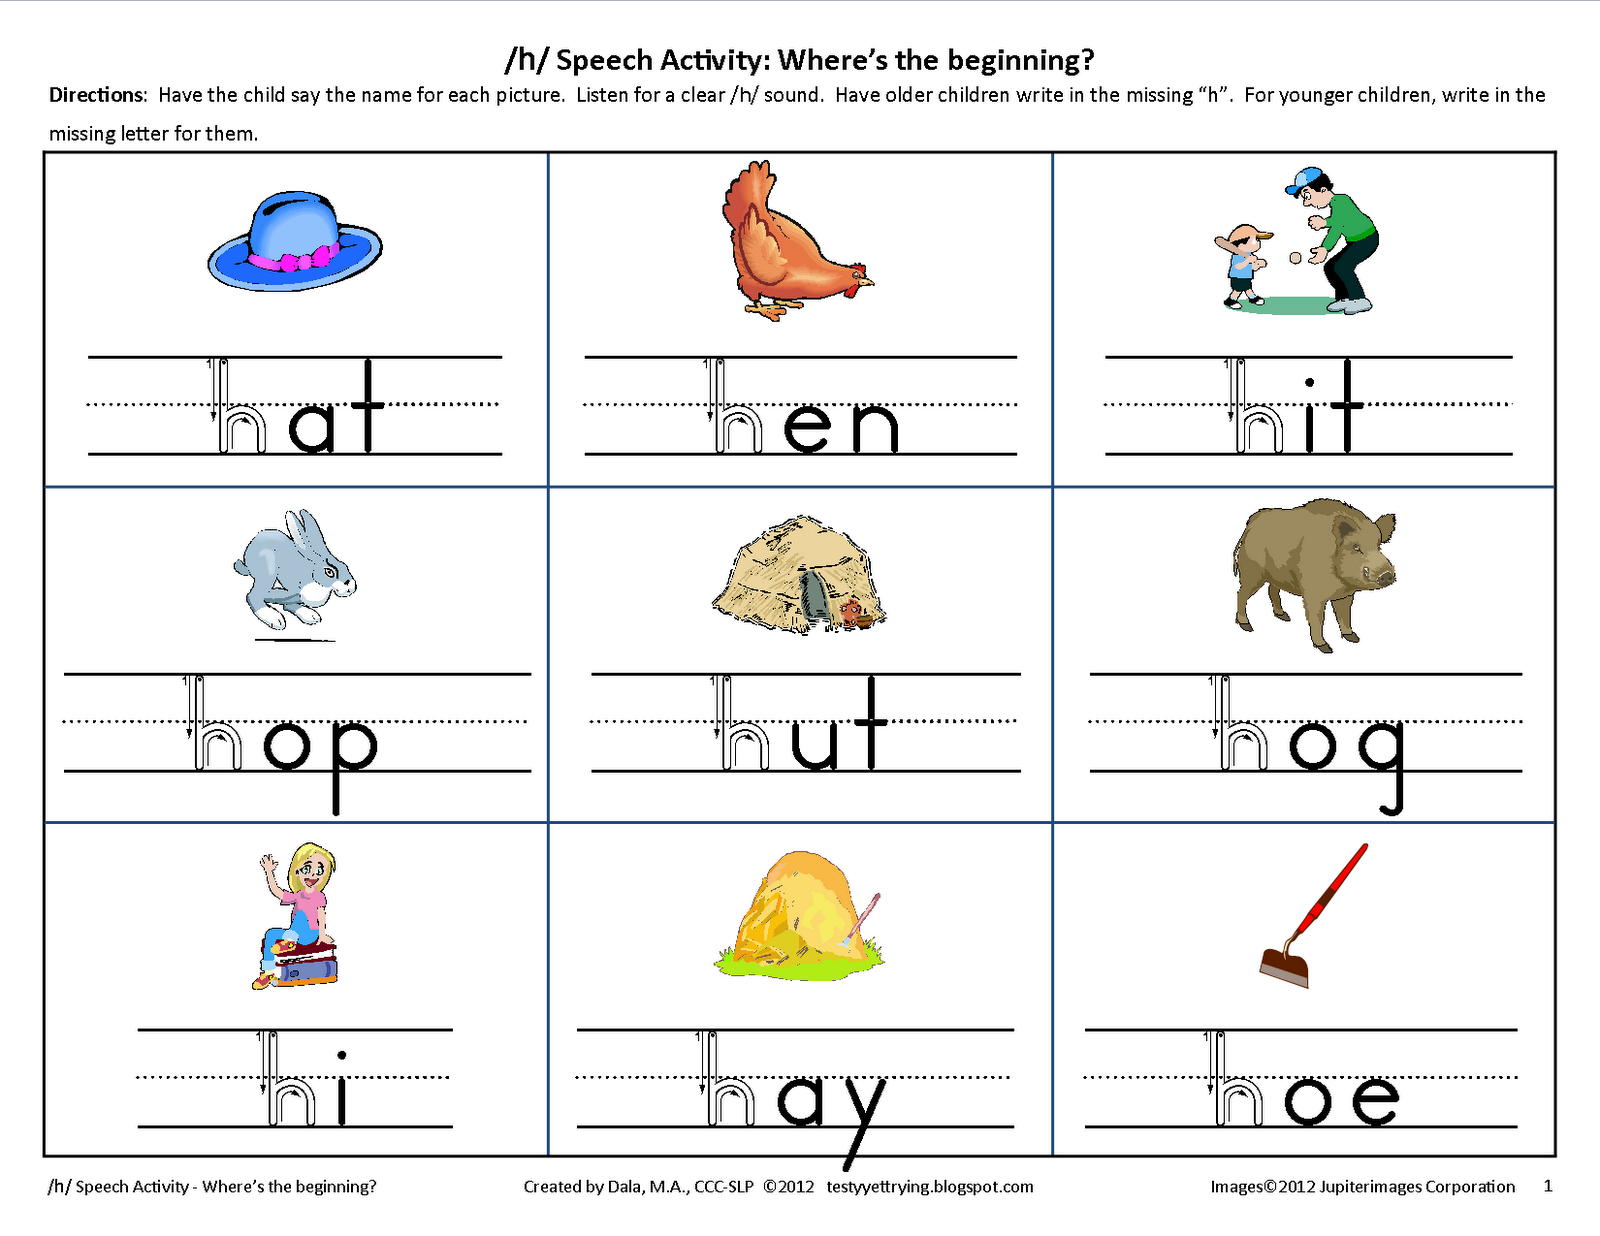 Weirdmailus  Unusual Testy Yet Trying Initial H Speech Worksheet With Exciting Make Classroom Teachers Happy Reinforce Phonics And Handwriting And Practice Speech All At The Same Time With Easy On The Eye Tracing Letters Worksheet Az Also Matching Abc Worksheets In Addition Modals Worksheets And Internet Worksheets For Students As Well As Proofreading Sentences Worksheets Additionally Story Grammar Worksheets From Testyyettryingblogspotcom With Weirdmailus  Exciting Testy Yet Trying Initial H Speech Worksheet With Easy On The Eye Make Classroom Teachers Happy Reinforce Phonics And Handwriting And Practice Speech All At The Same Time And Unusual Tracing Letters Worksheet Az Also Matching Abc Worksheets In Addition Modals Worksheets From Testyyettryingblogspotcom